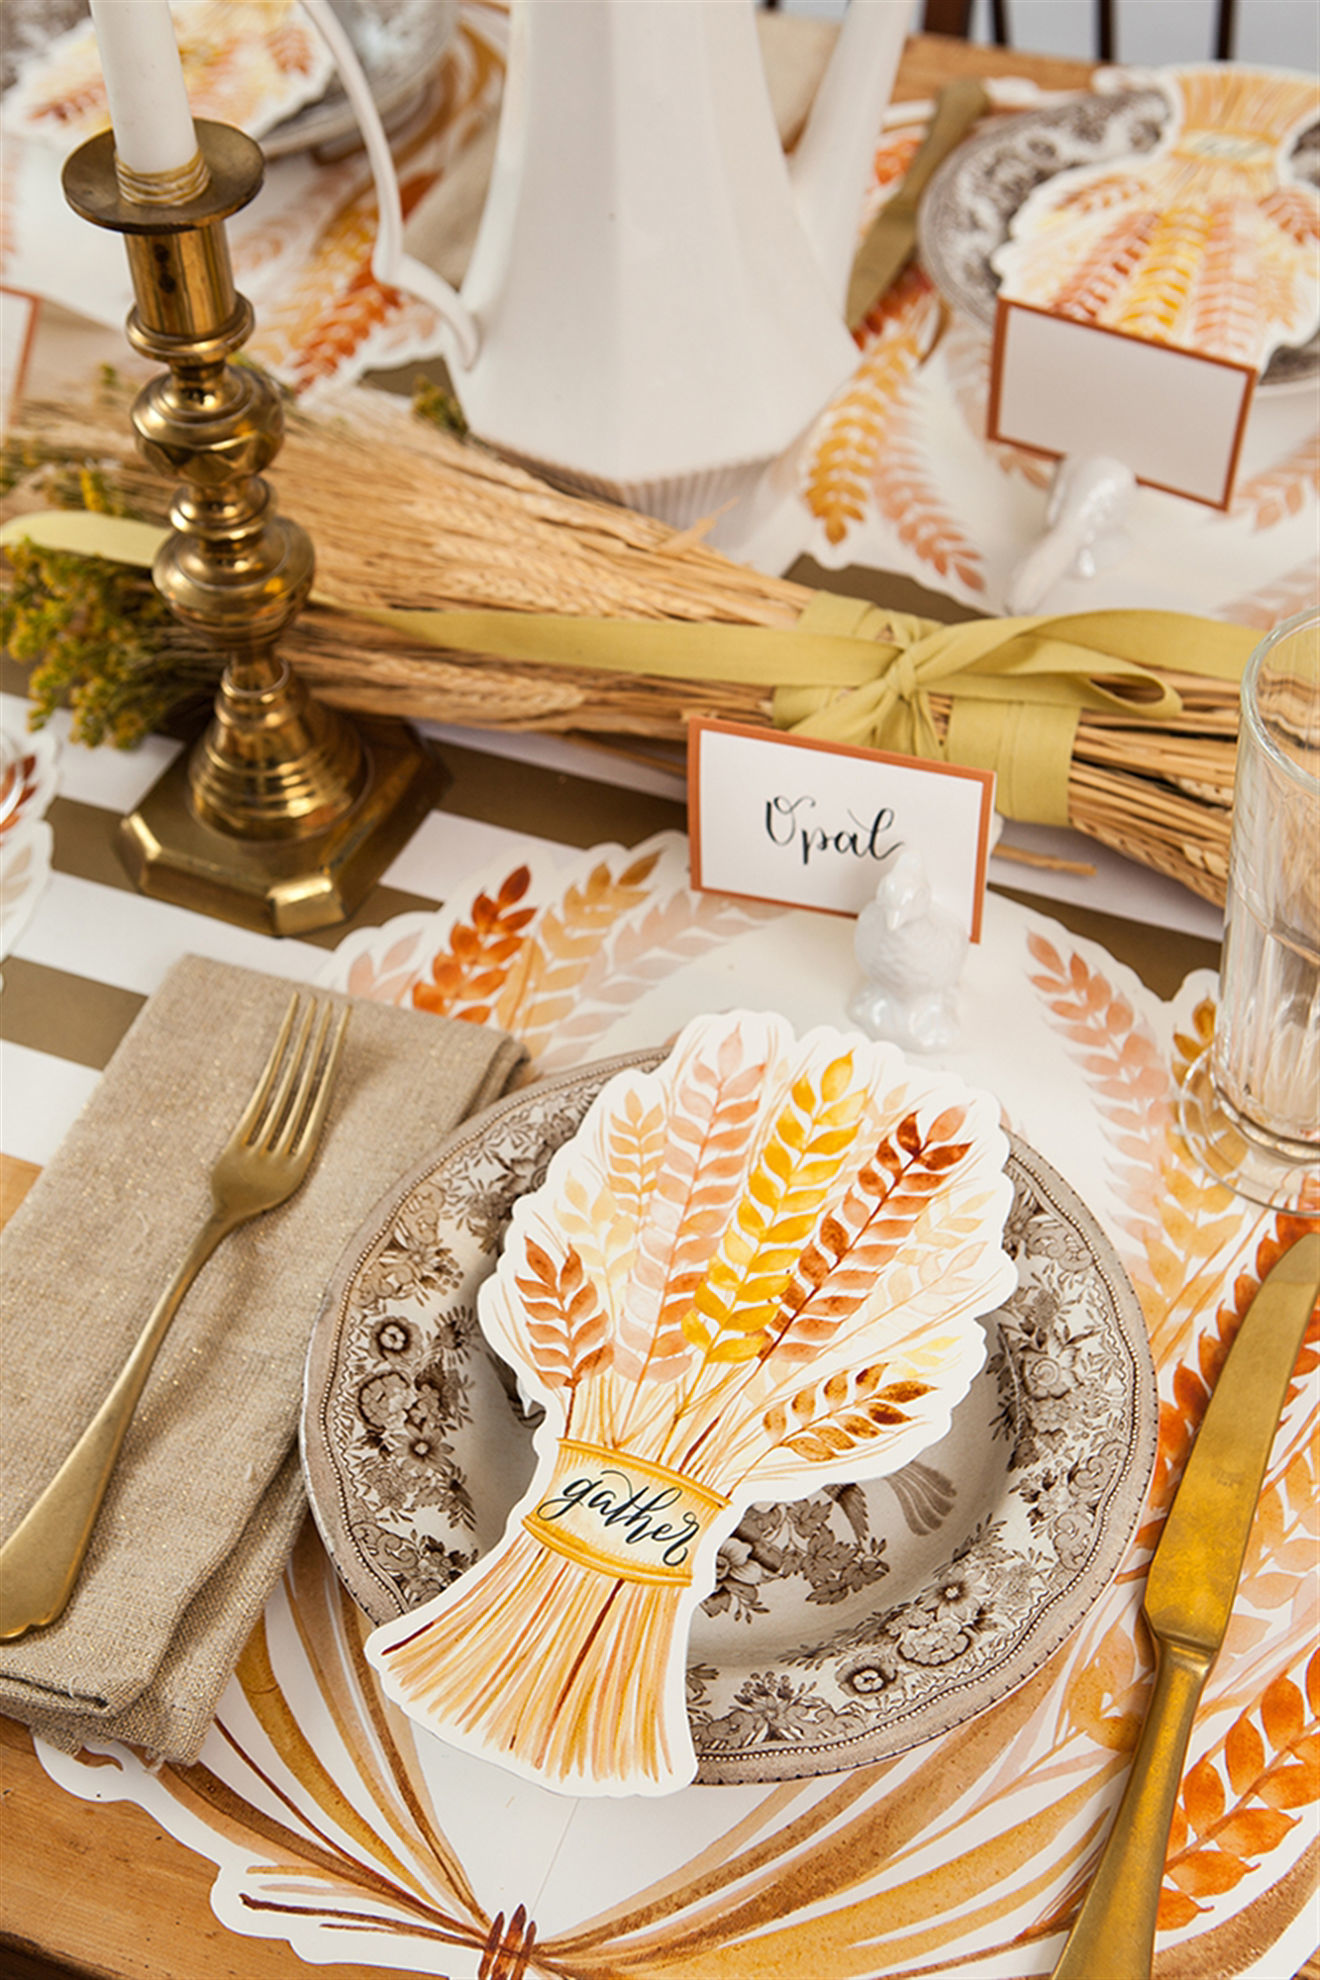 Die Cut Golden Harvest Placemat by Hester & Cook